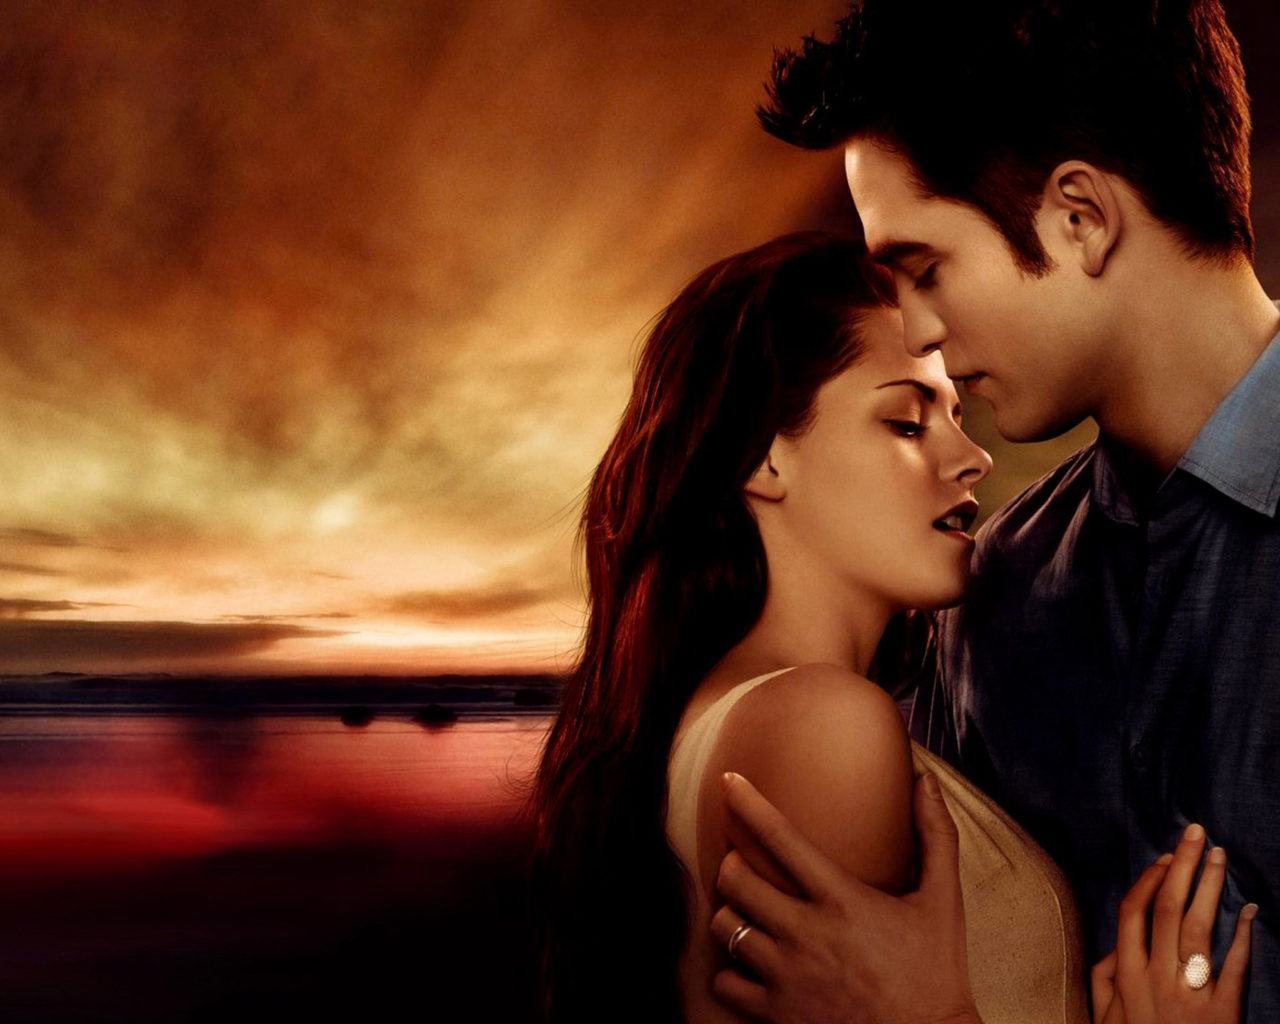 Romantic Couple Romance At Sunset Love Hug Kiss Romantic Couple Wallpapers Free Download 3840x2400 Wallpapers13 Com